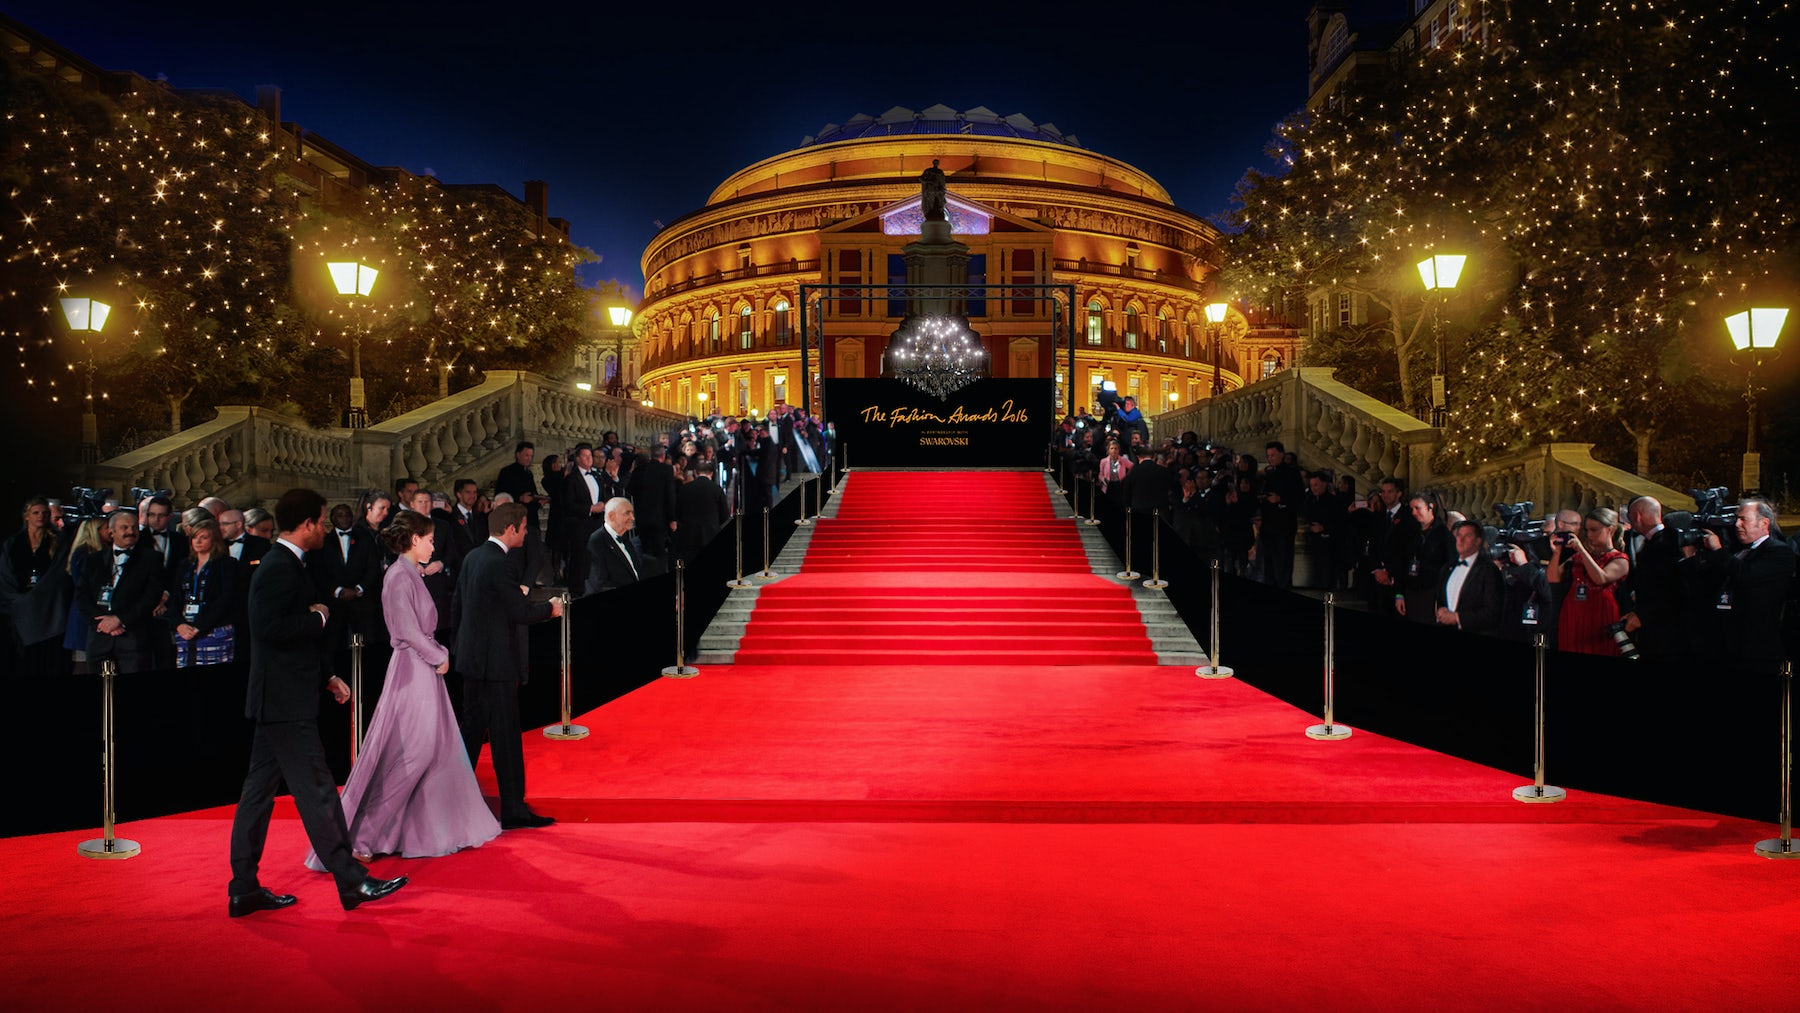 Rendering of the Fashion Awards 2016 at the Royal Albert Hall | Source: Courtesy